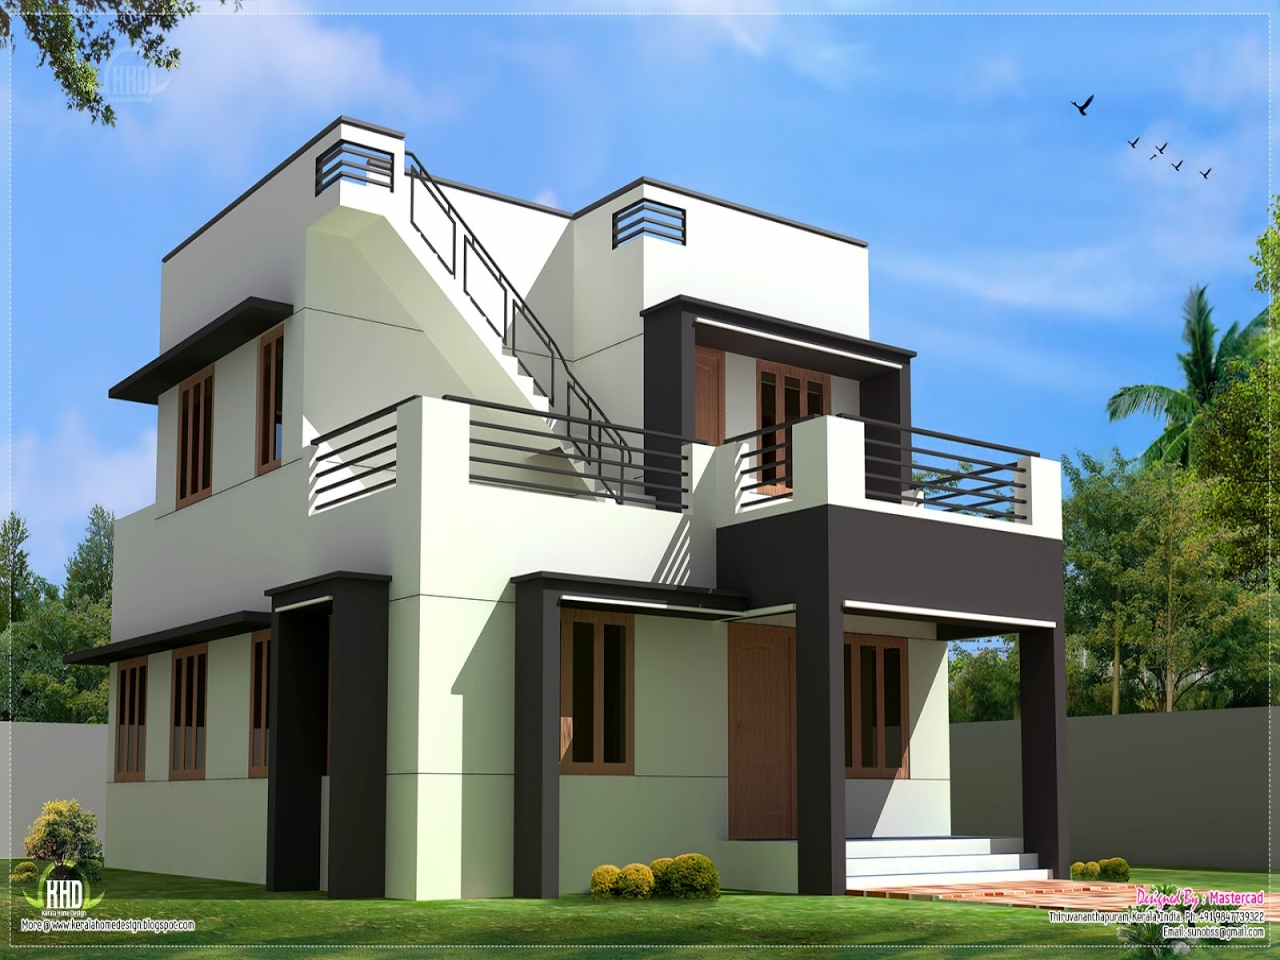 Collection 50 beautiful narrow house design for a 2 story for Beautiful small home designs